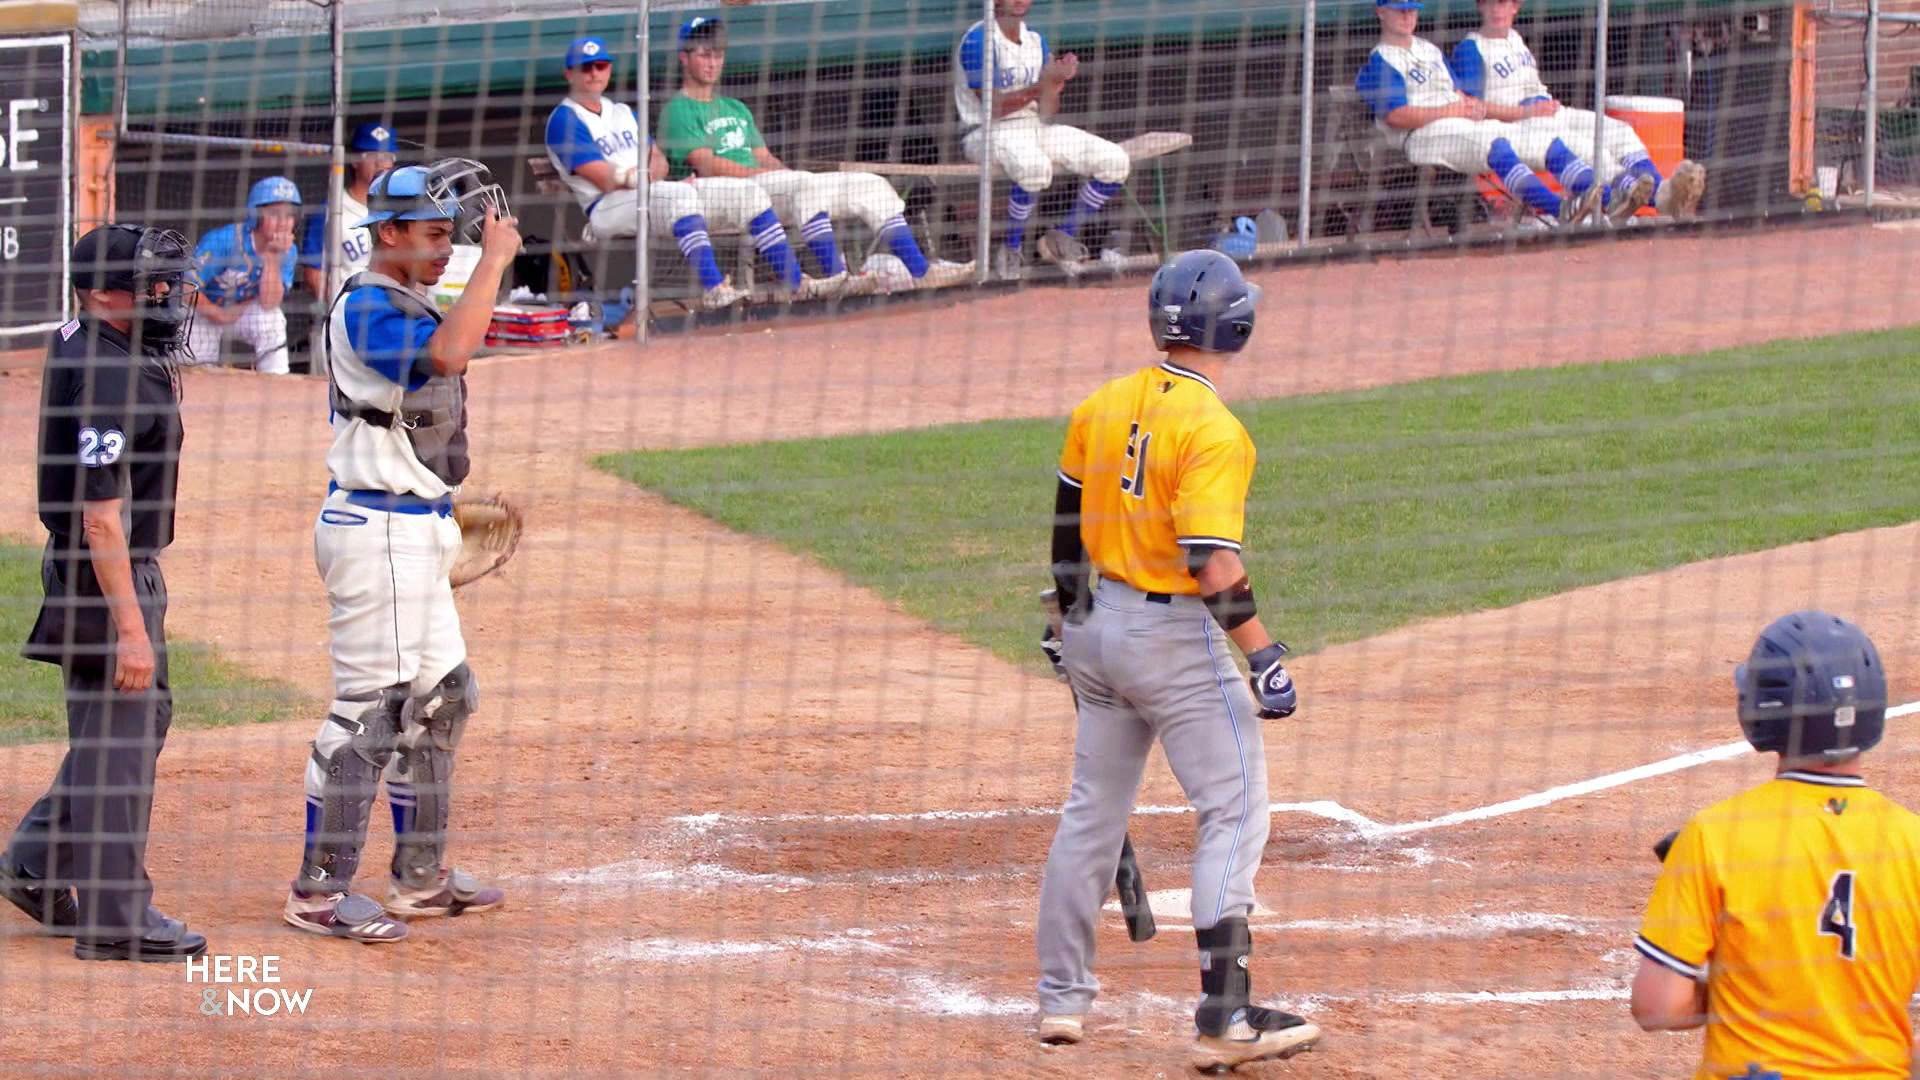 Madison Mallards catcher Drake Baldwin stands up behind home plate as a batter stands outseid the batter box.